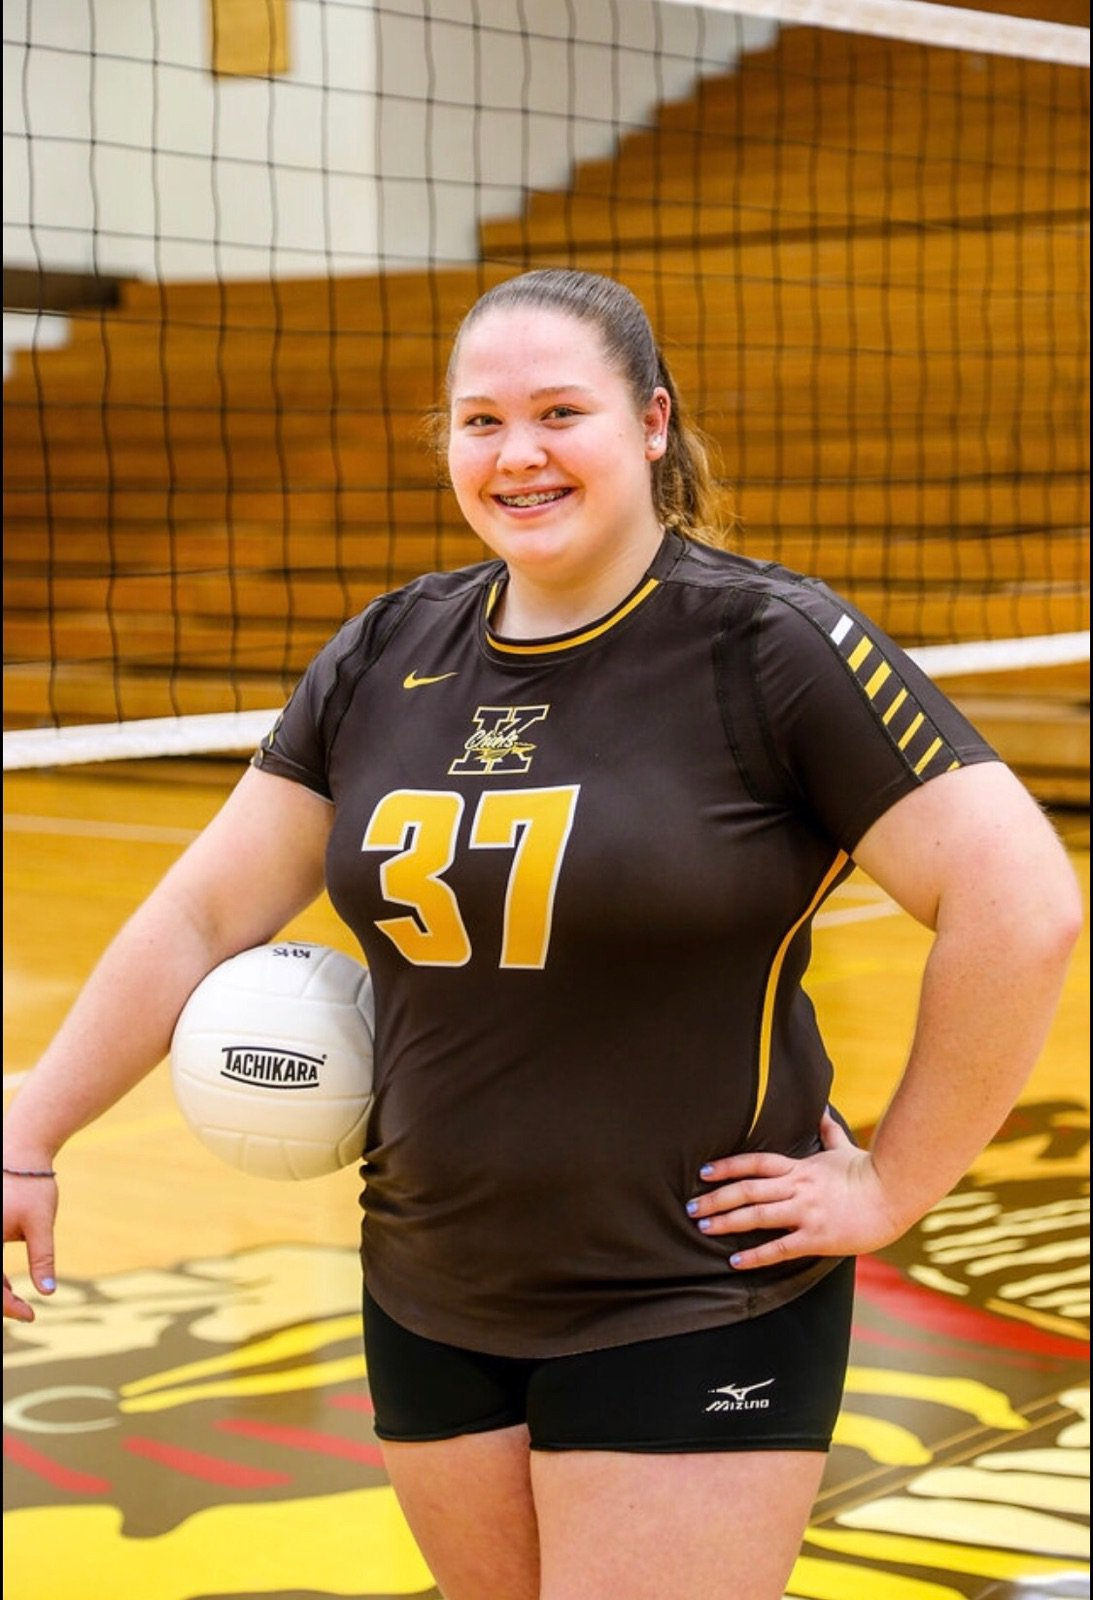 Kennedy Aurentz, who placed at state in shot put her first two years in high school, is a varsity volleyball starter for Kickapoo (Springfield, Mo.)